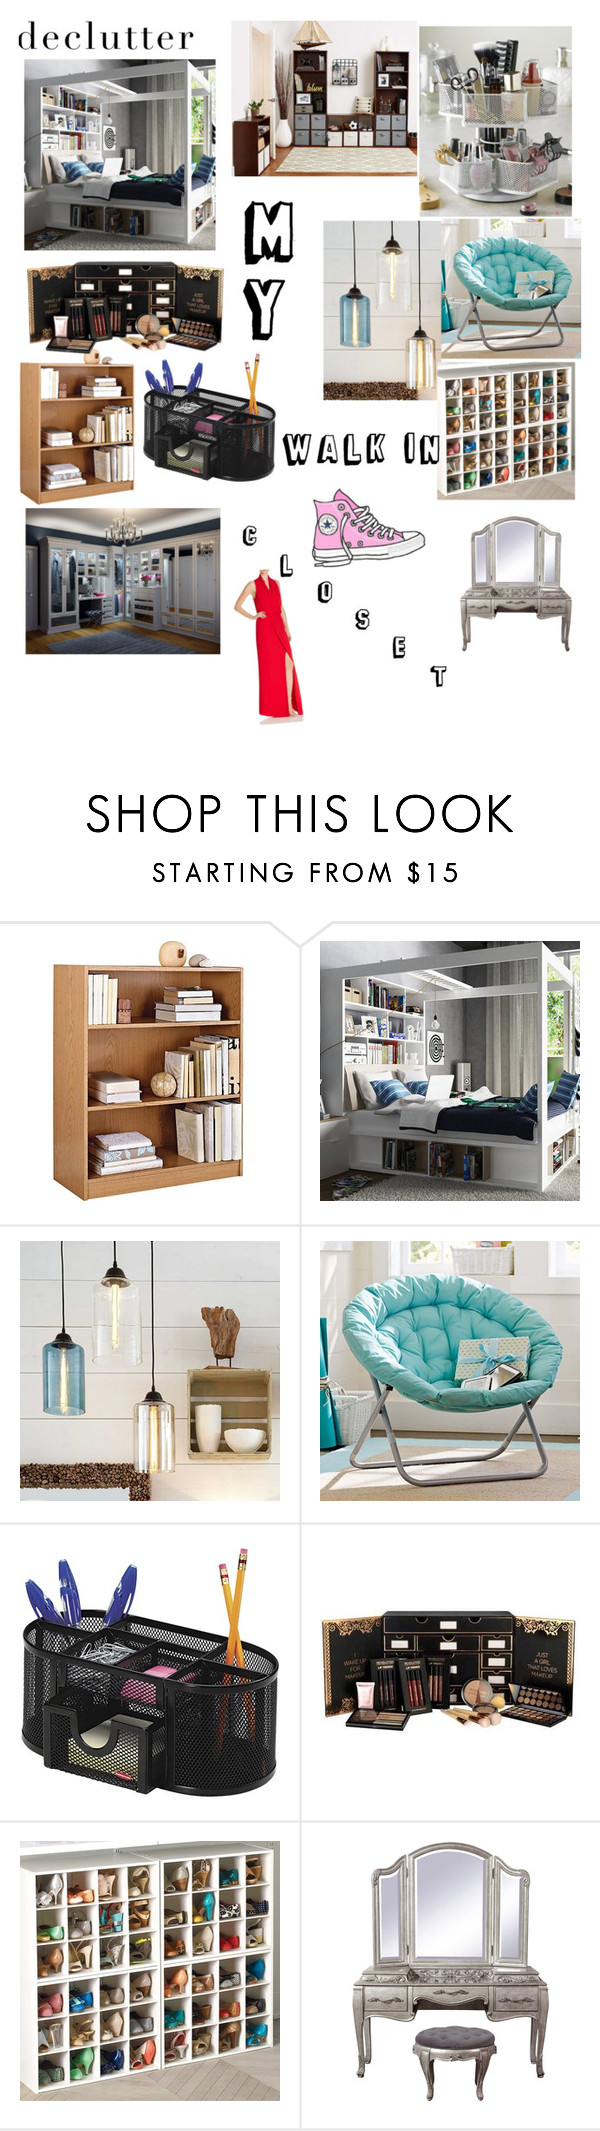 """My Walk in Closet"" by olliepea ❤ liked on Polyvore featuring interior, interiors, interior design, home, home decor, interior decorating, Ameriwood, PBteen, Rolodex and Parker"